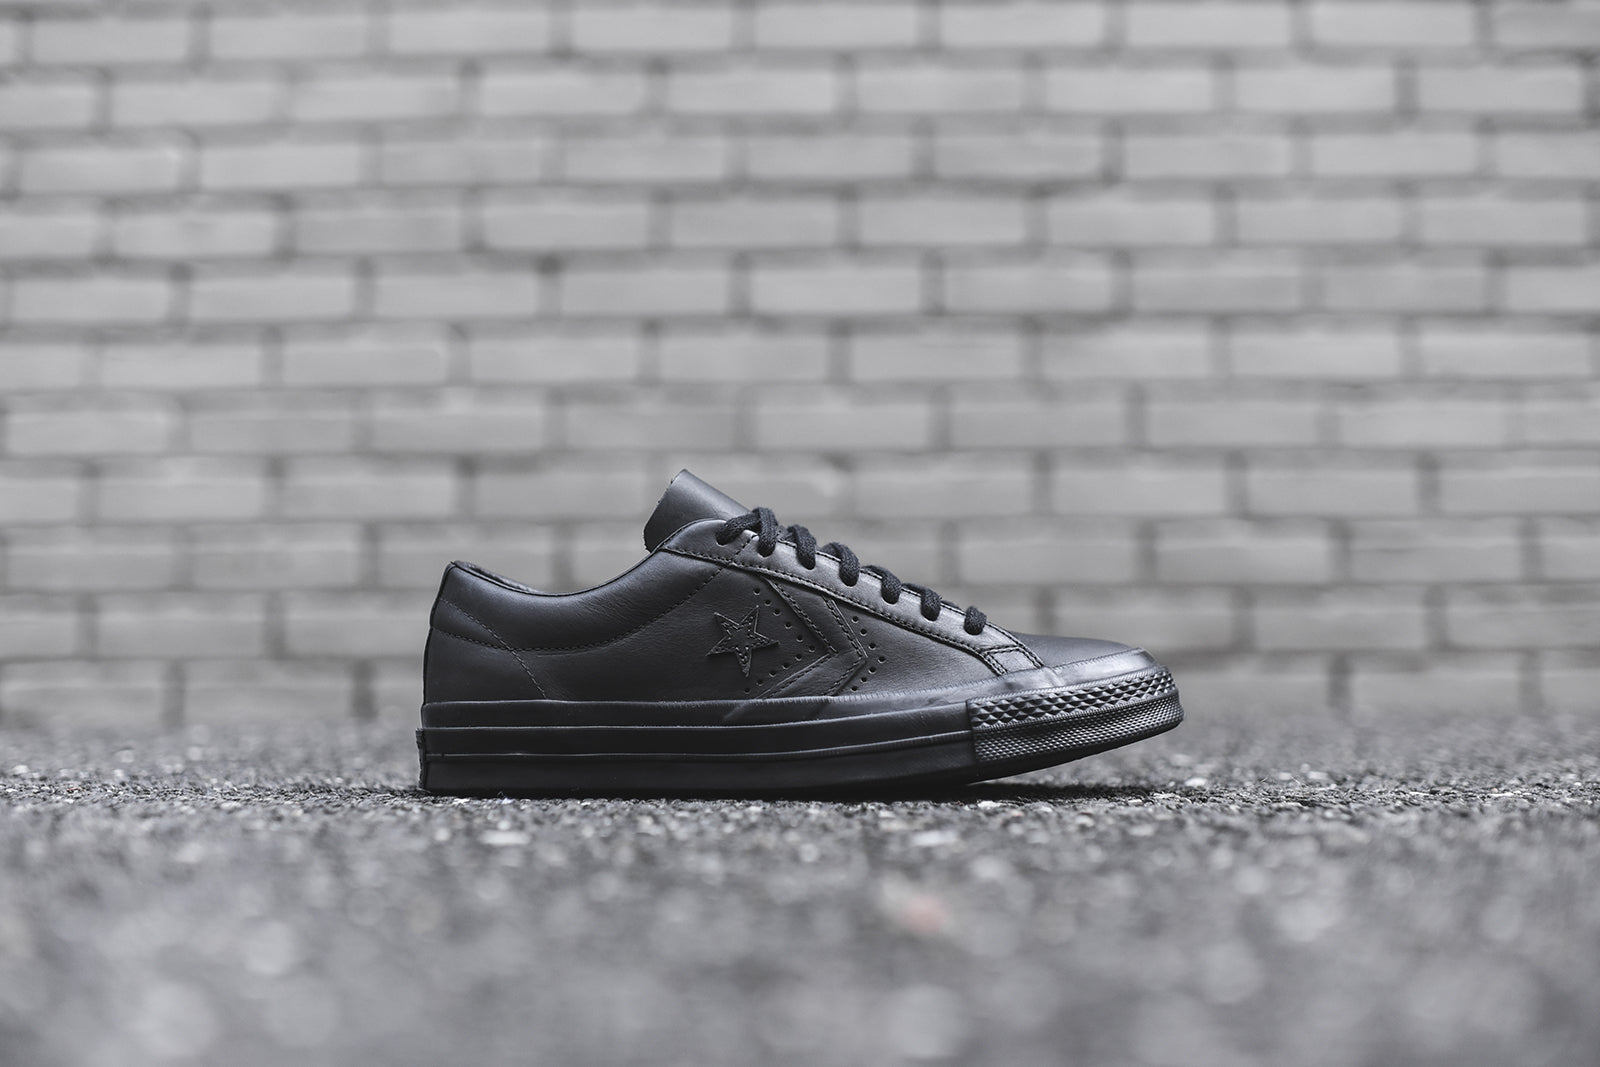 converse one star engineered